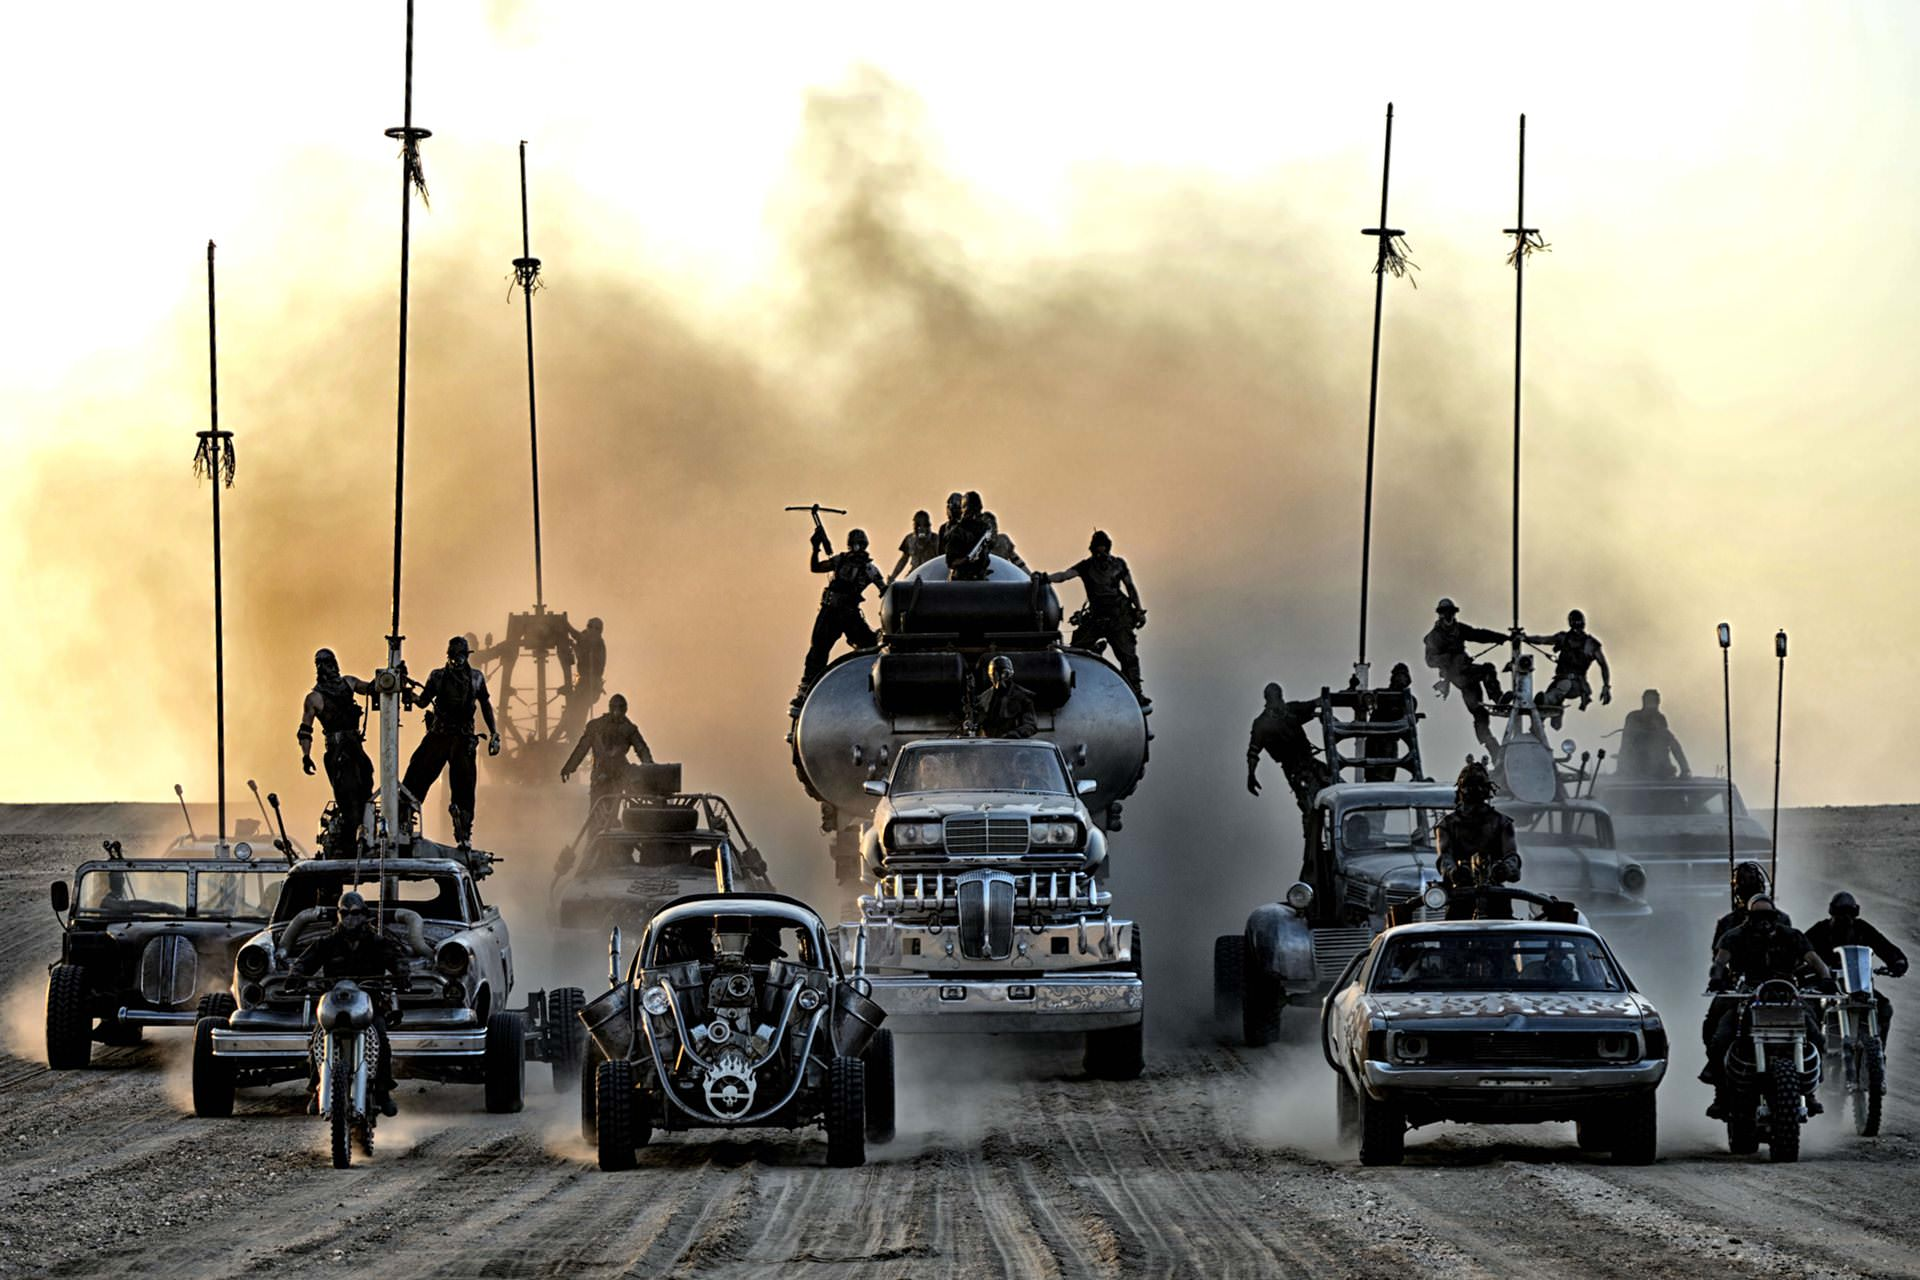 mad-max-fury-road-image-jpg.jpg